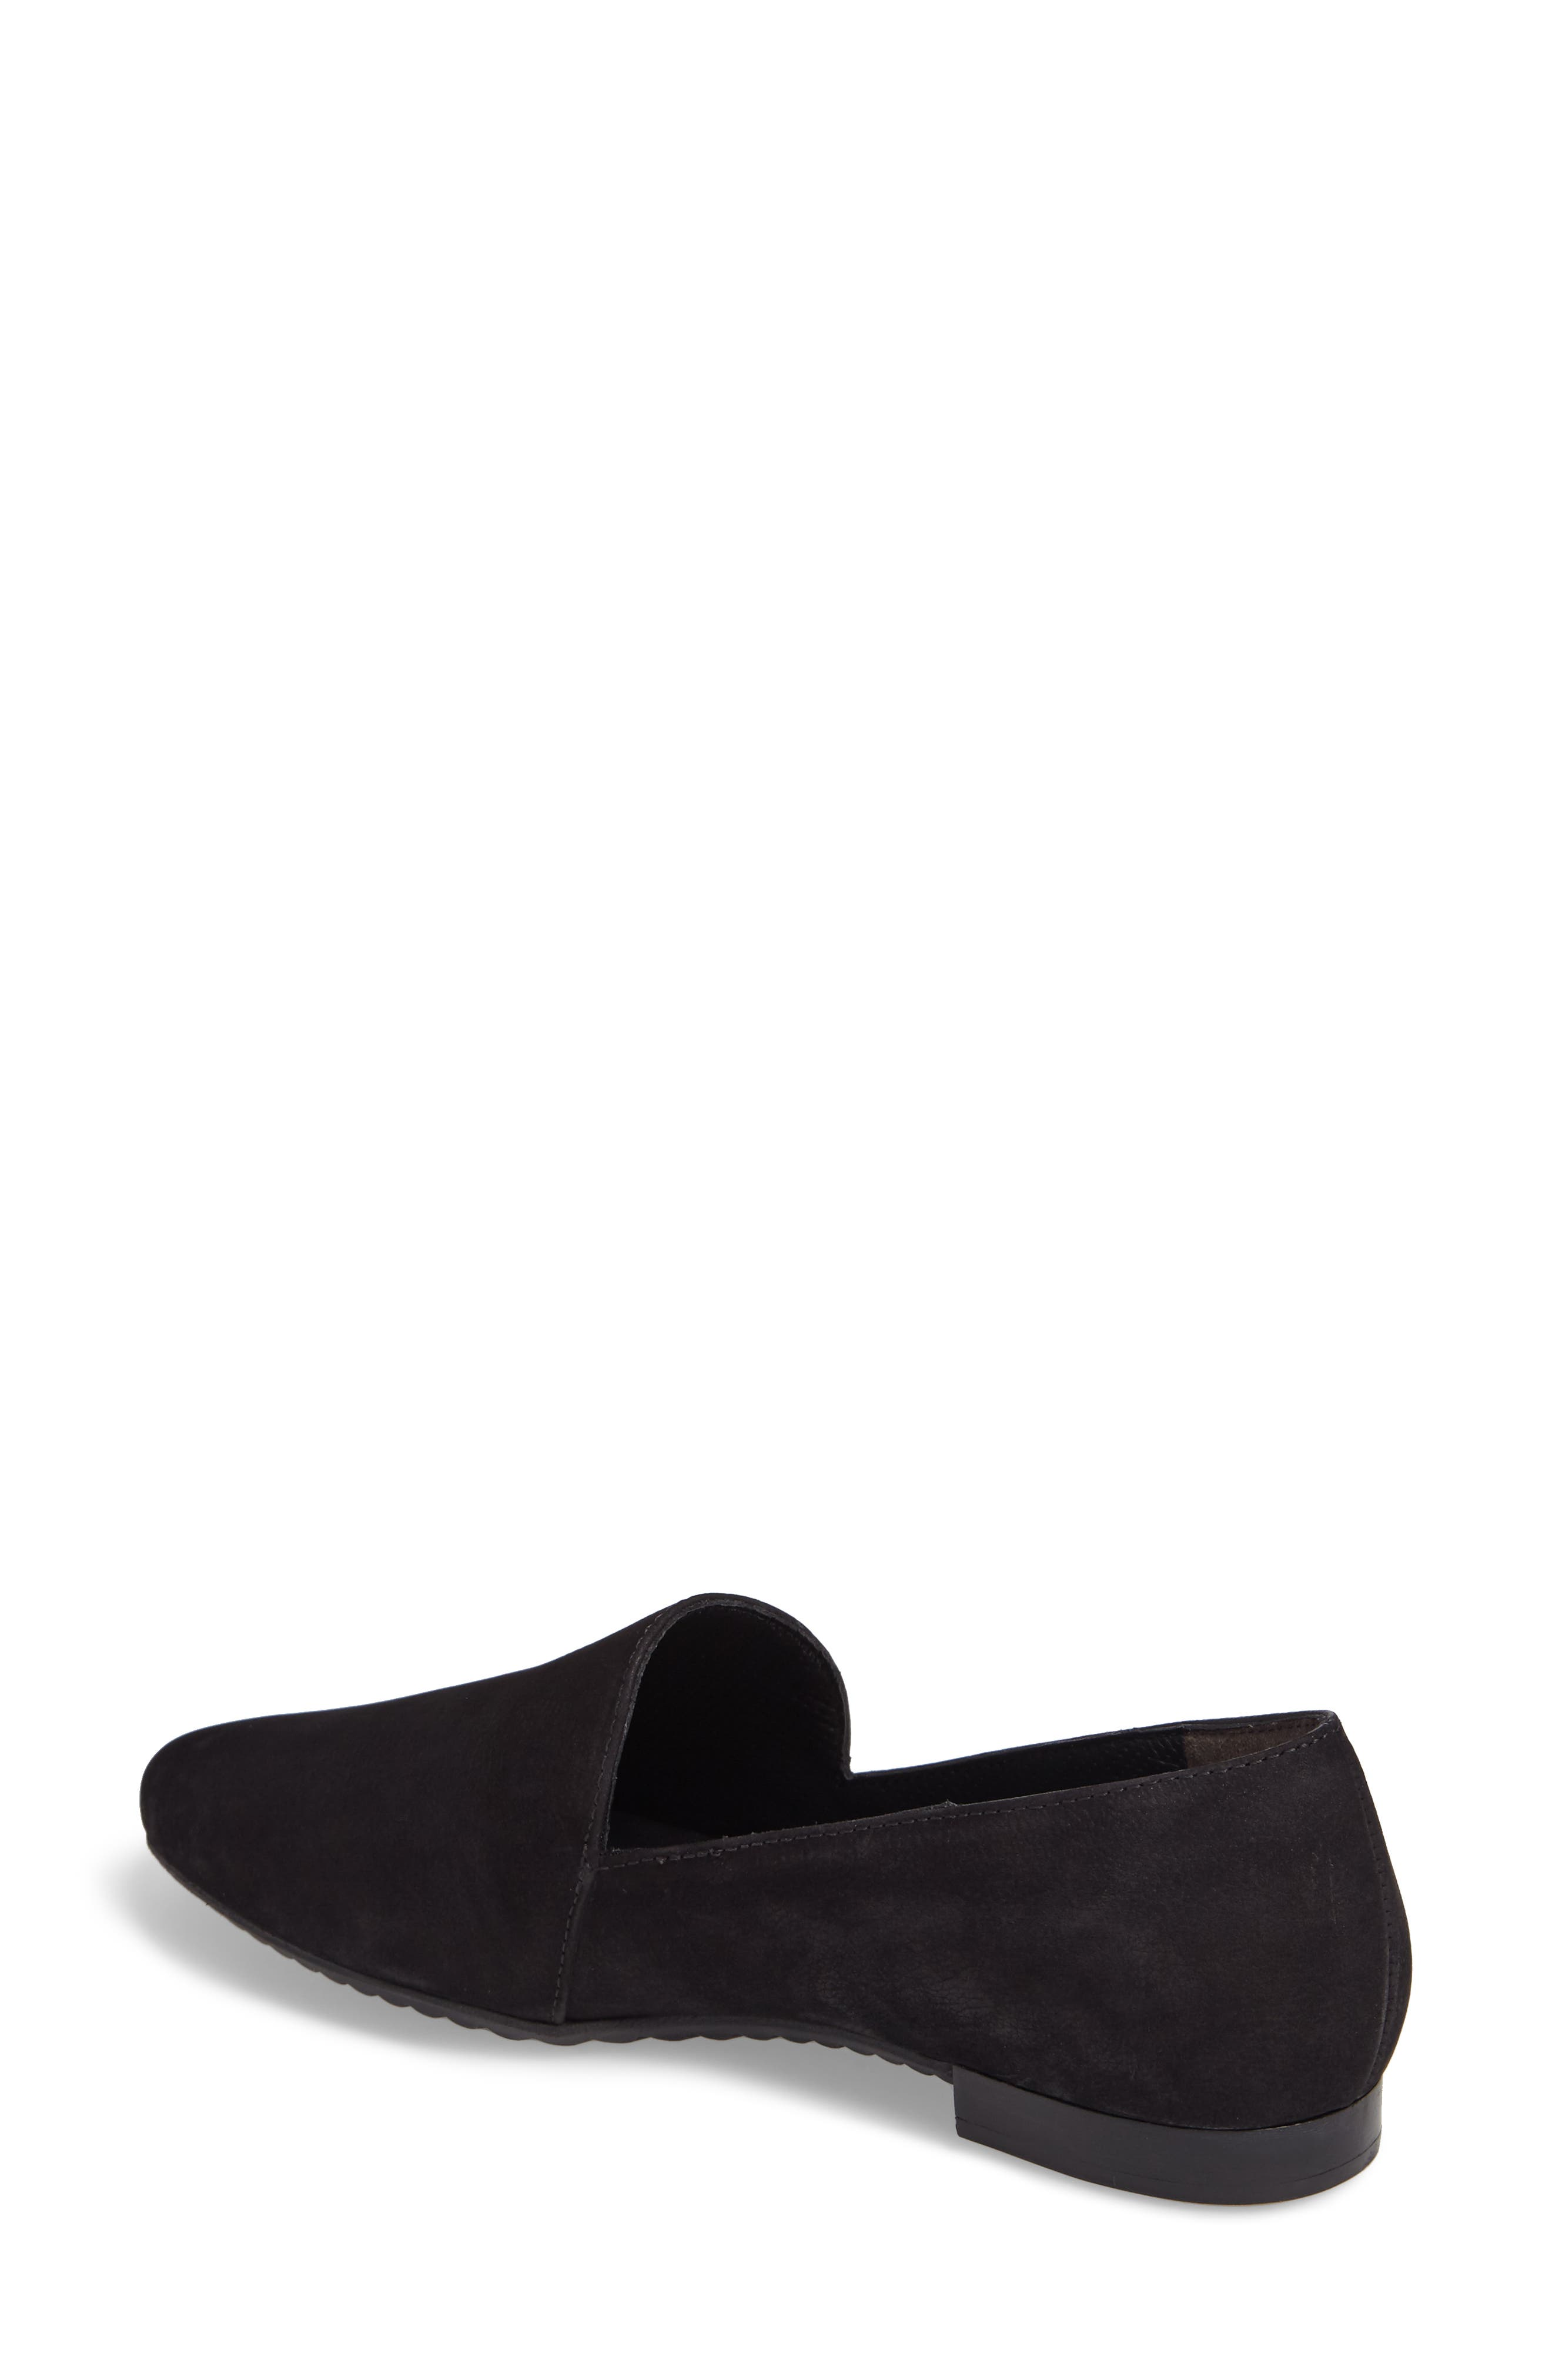 Naomi Loafer,                             Alternate thumbnail 4, color,